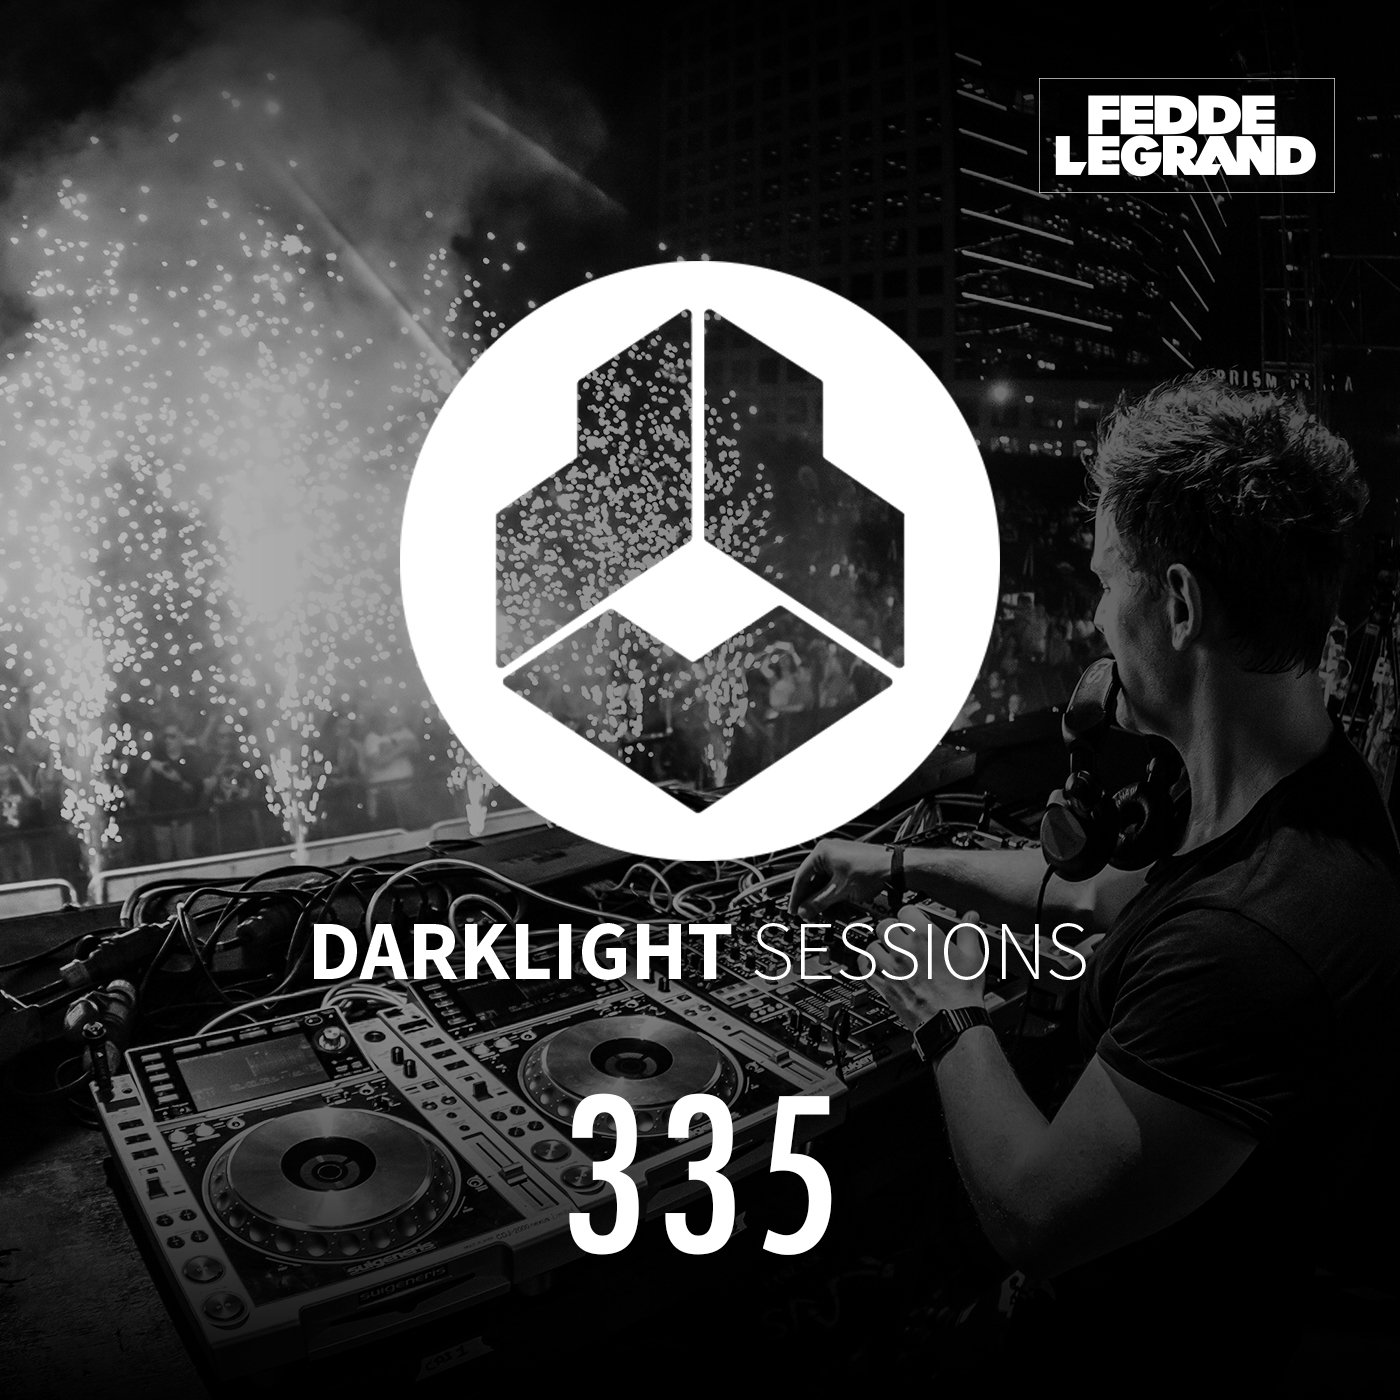 Darklight Sessions 335